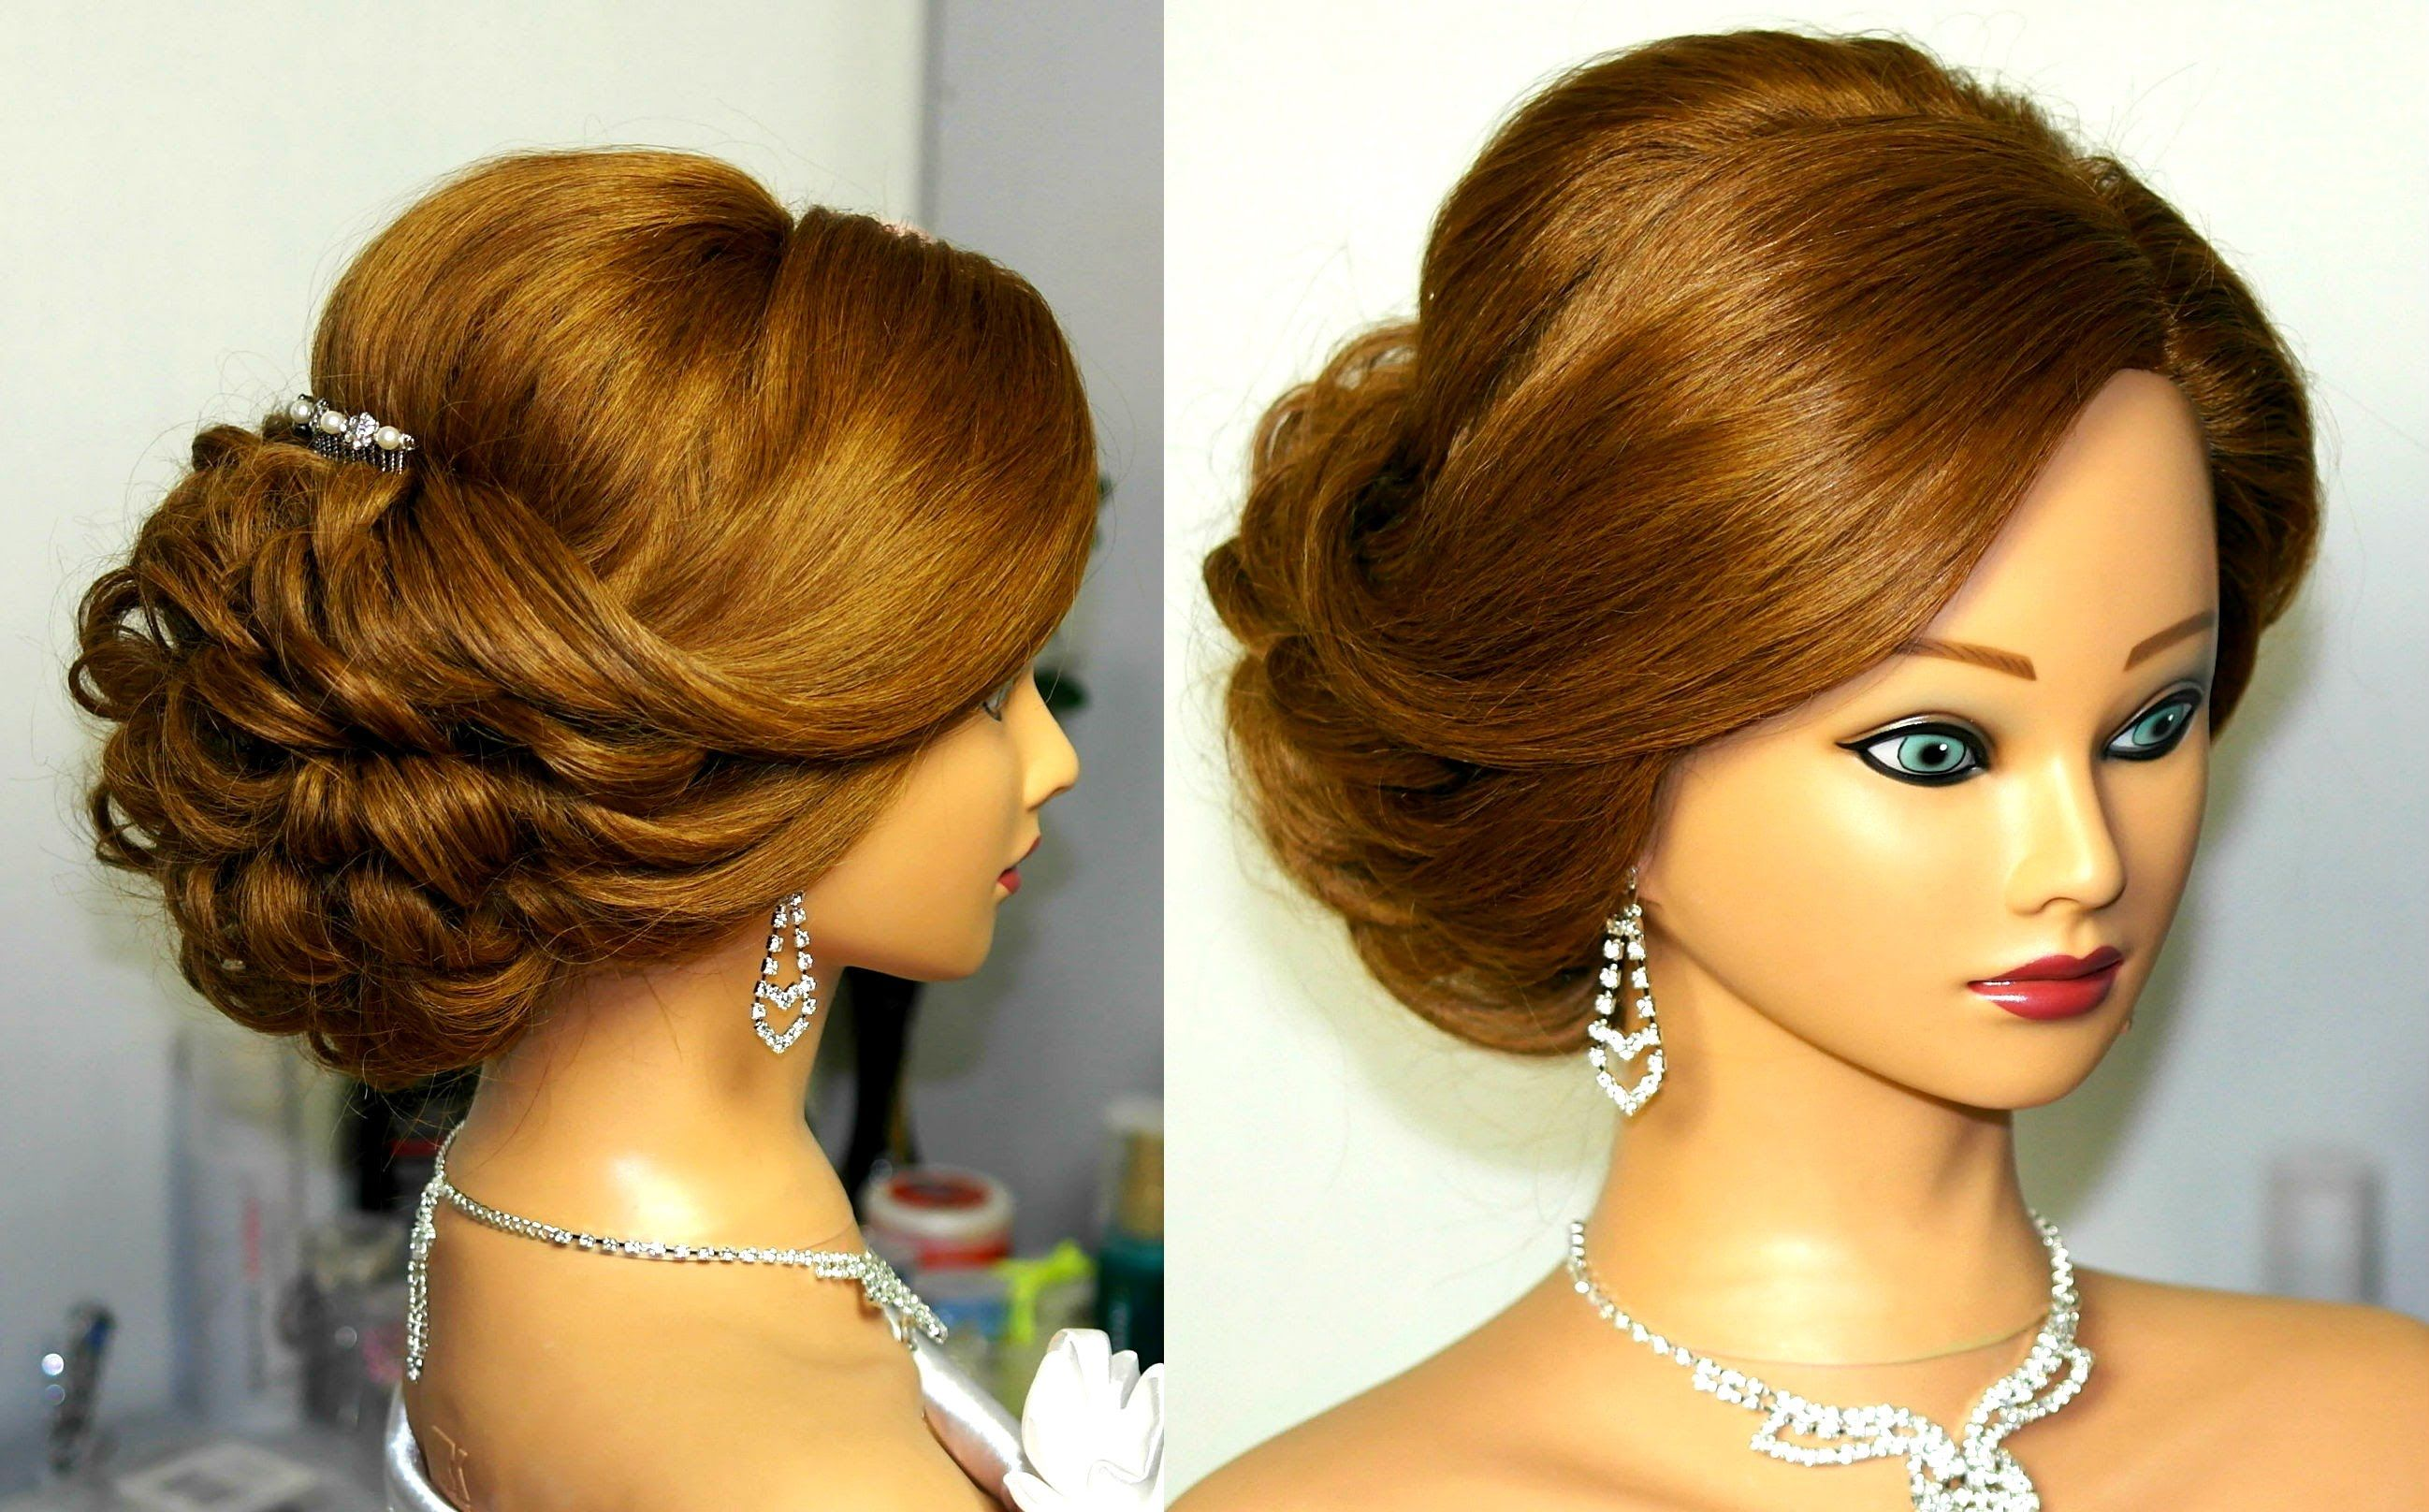 Outstanding Updo Hairstyles For Medium Hair And Search On Pinterest Short Hairstyles Gunalazisus